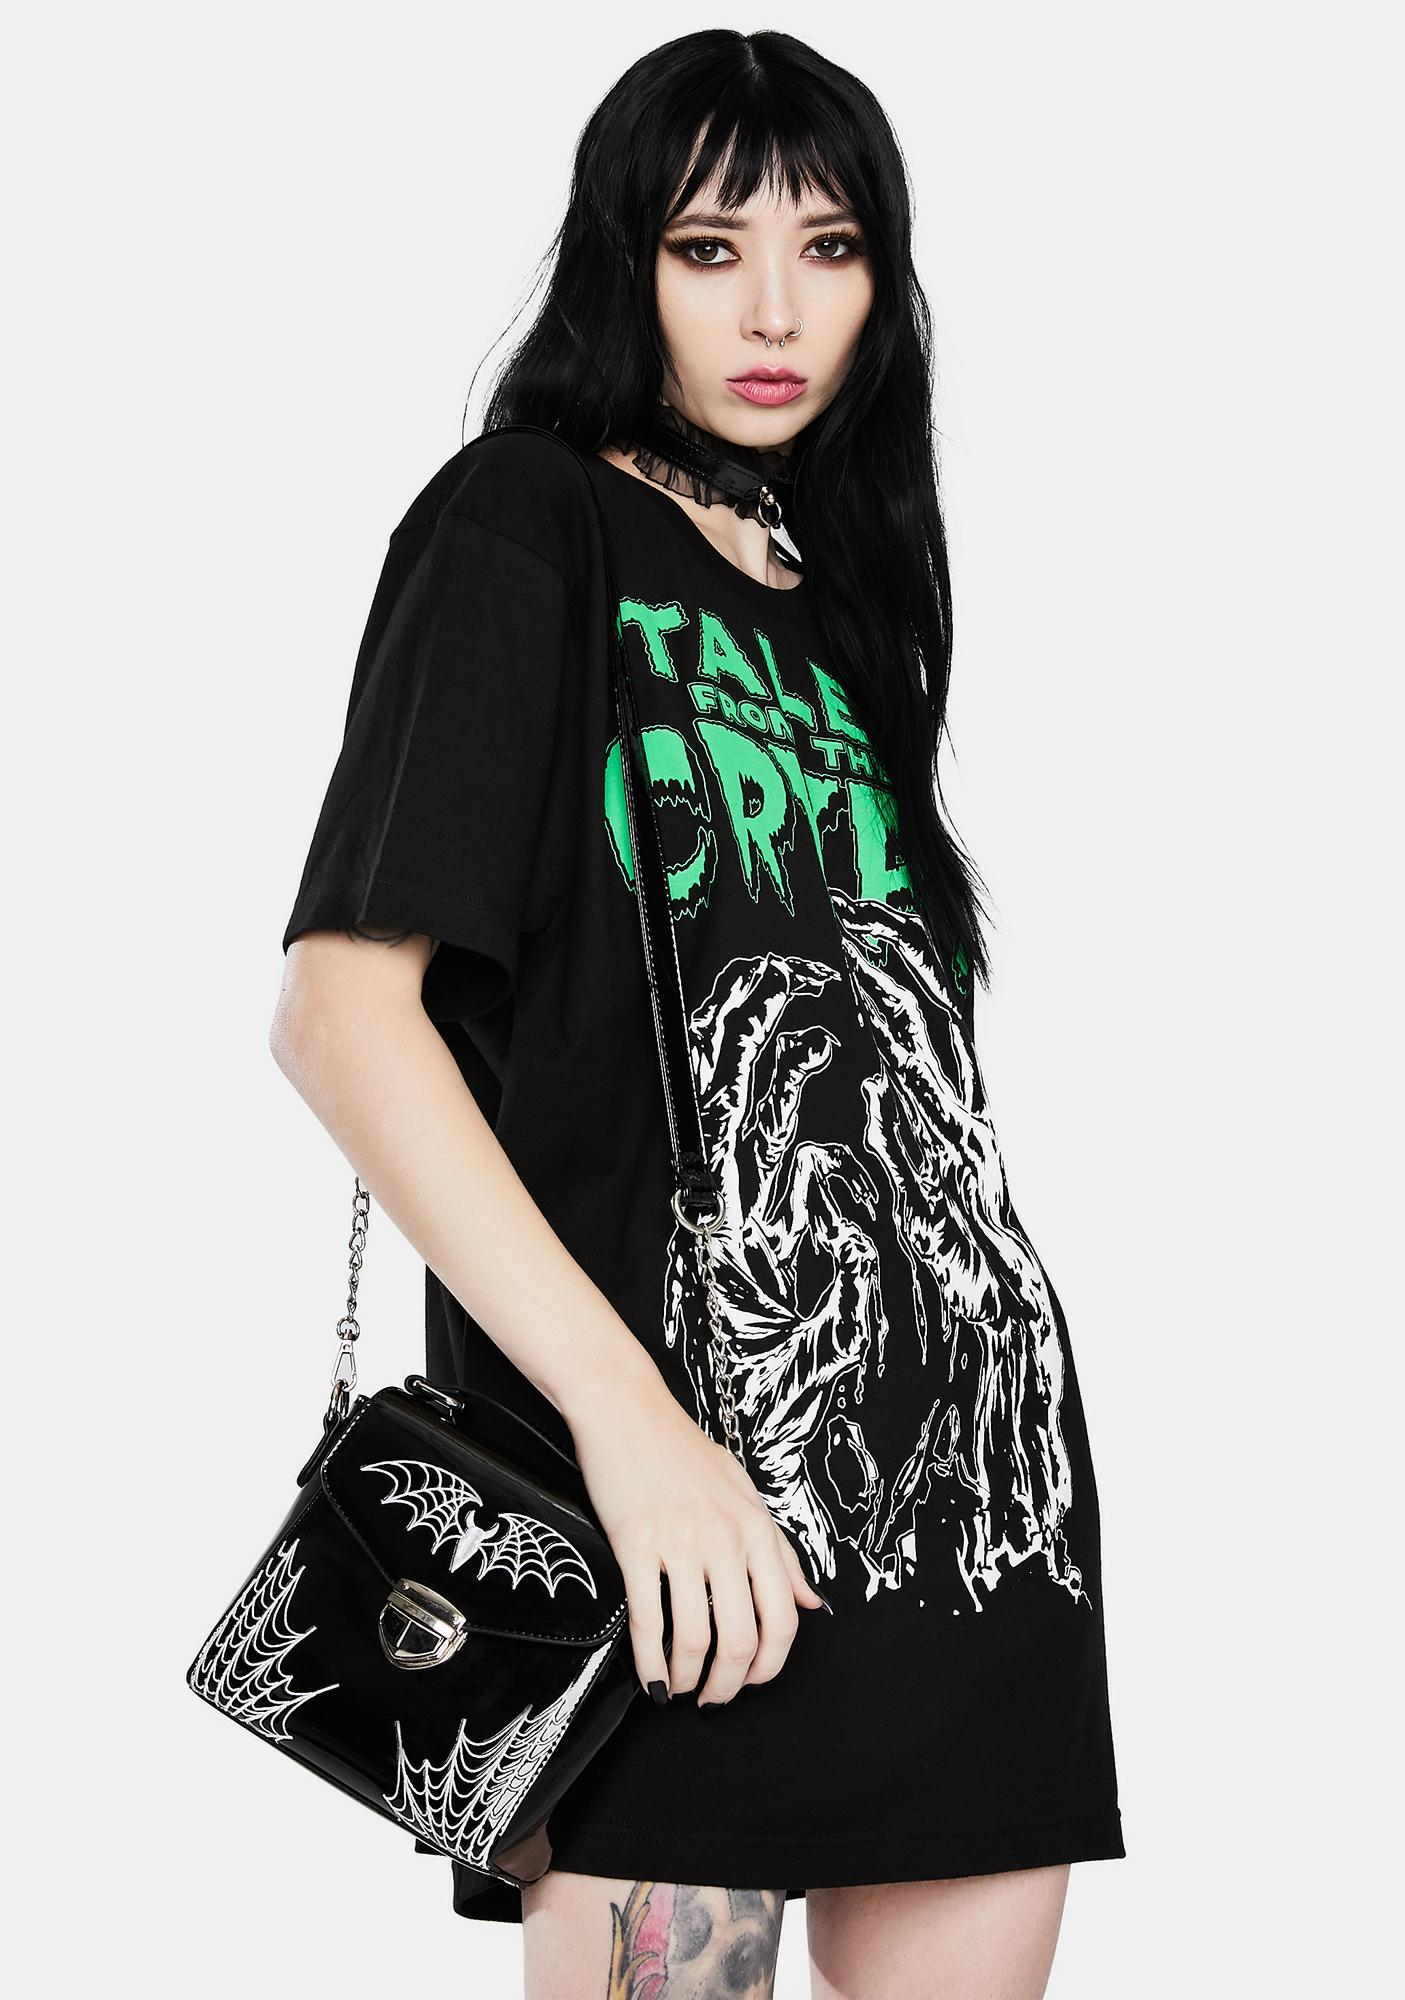 Kreepsville 666 Tales From The Crypt Graphic Tee